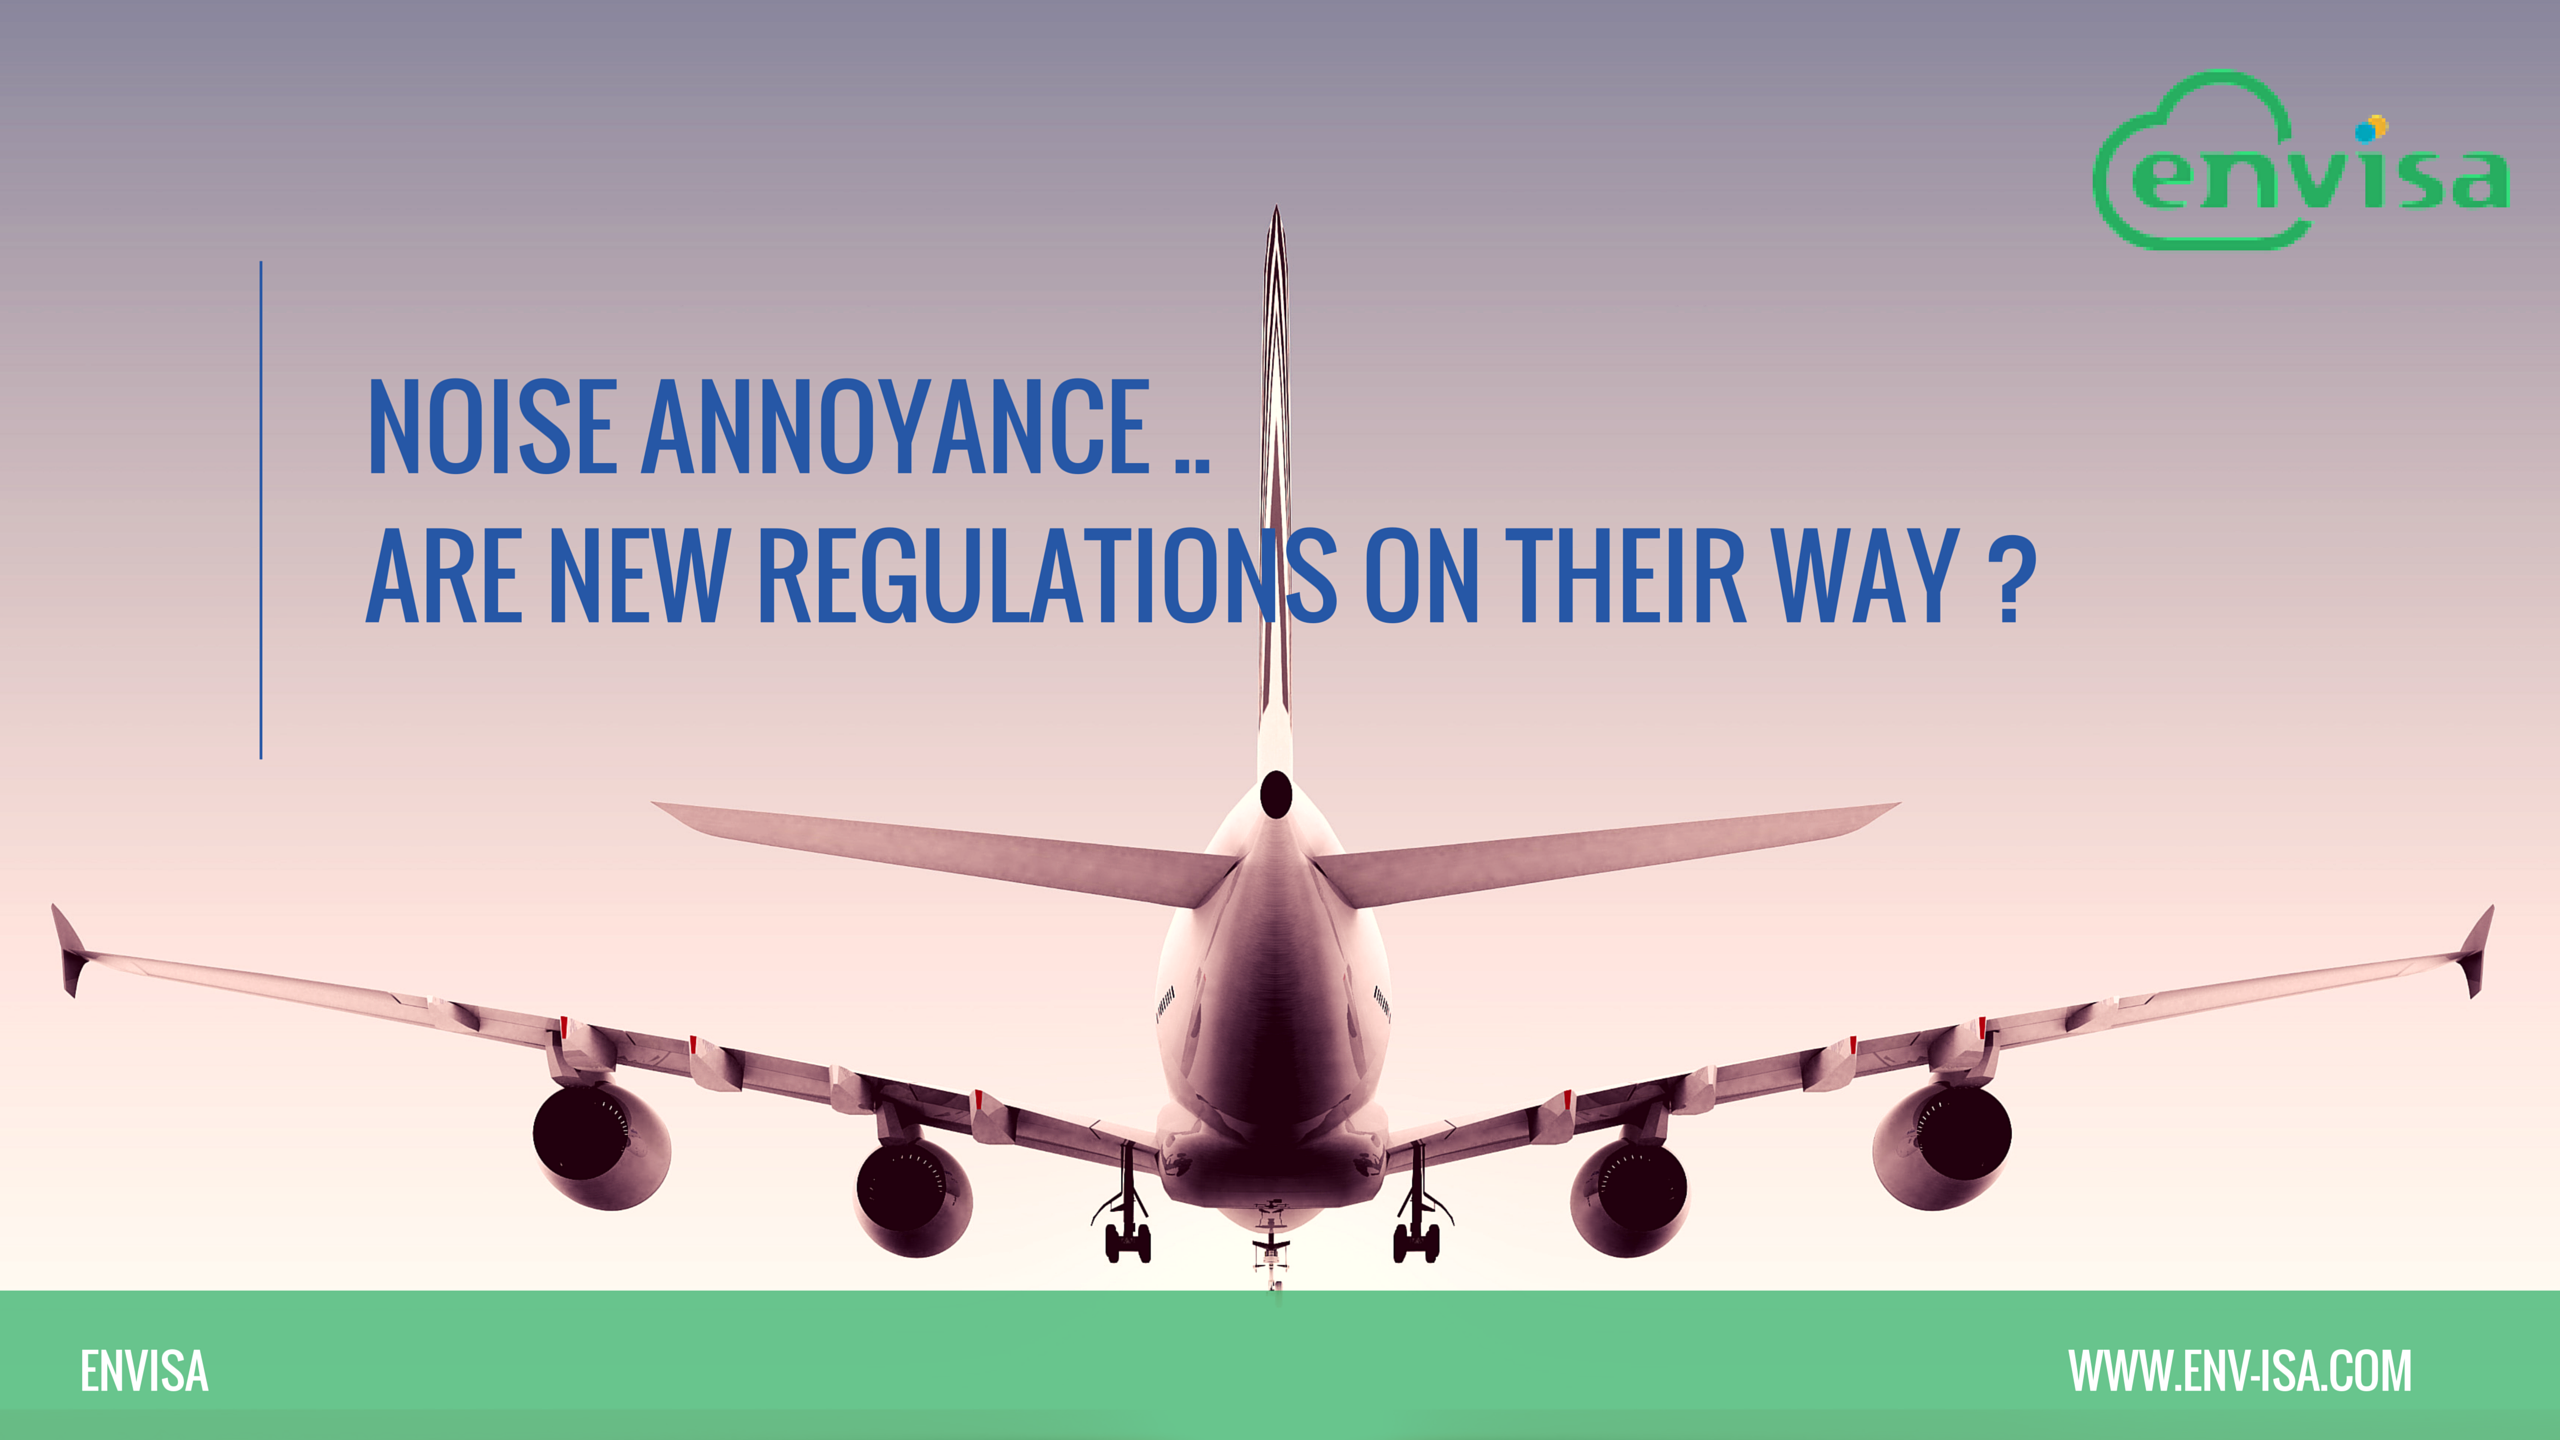 Noise annoyance ..Are new regulations on their way -